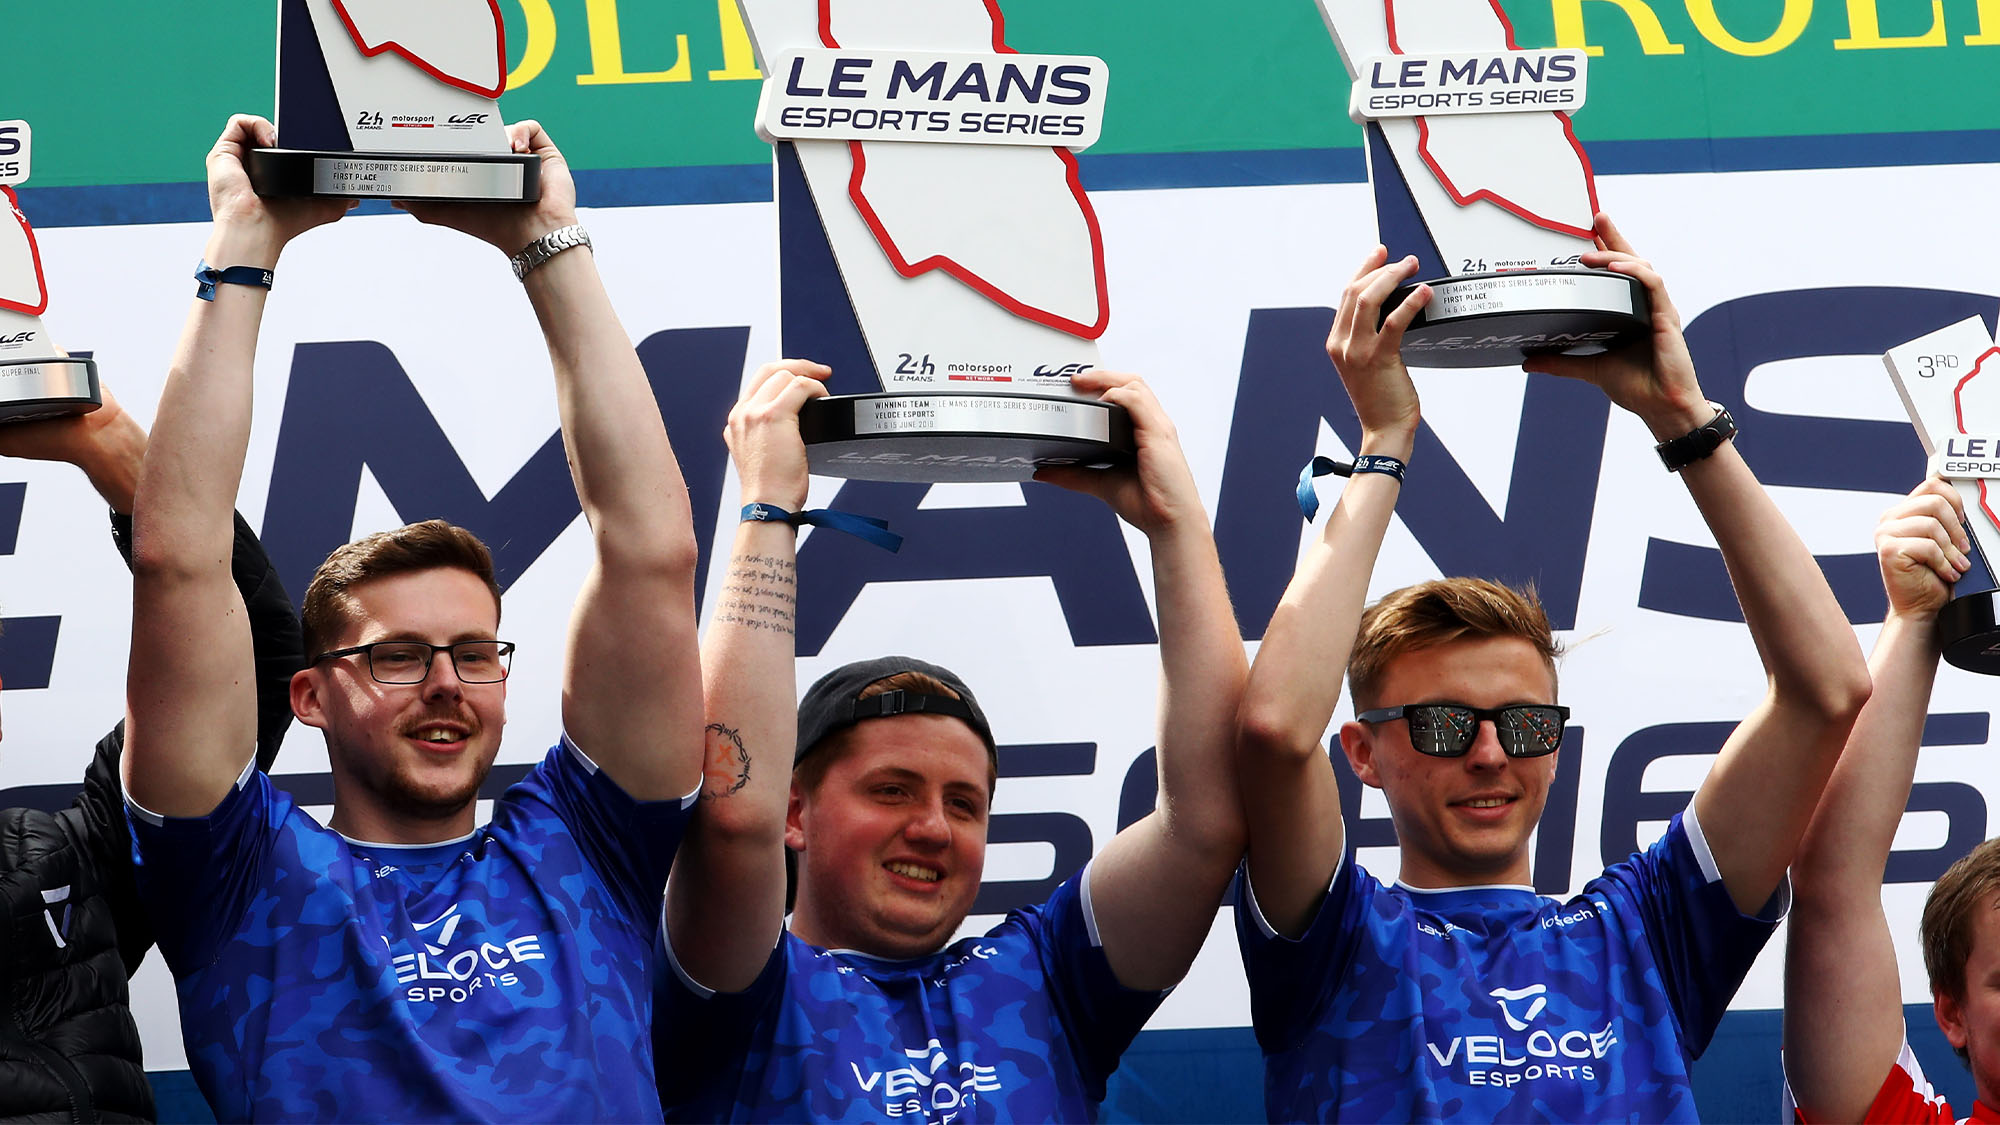 LE MANS, FRANCE - JUNE 15: (L-R) David Kelly (Sauber Dave) , Noah Schmitz (Veloce Virus) and James Baldwin (Veloce Jaaames) of Team Veloce celebrate on the podium after winning the Le Mans Esports Series Super Finale in the Fan Zone at the Circuit de la Sarthe on June 15, 2019 in Le Mans, France. (Photo by Ker Robertson/Getty Images)